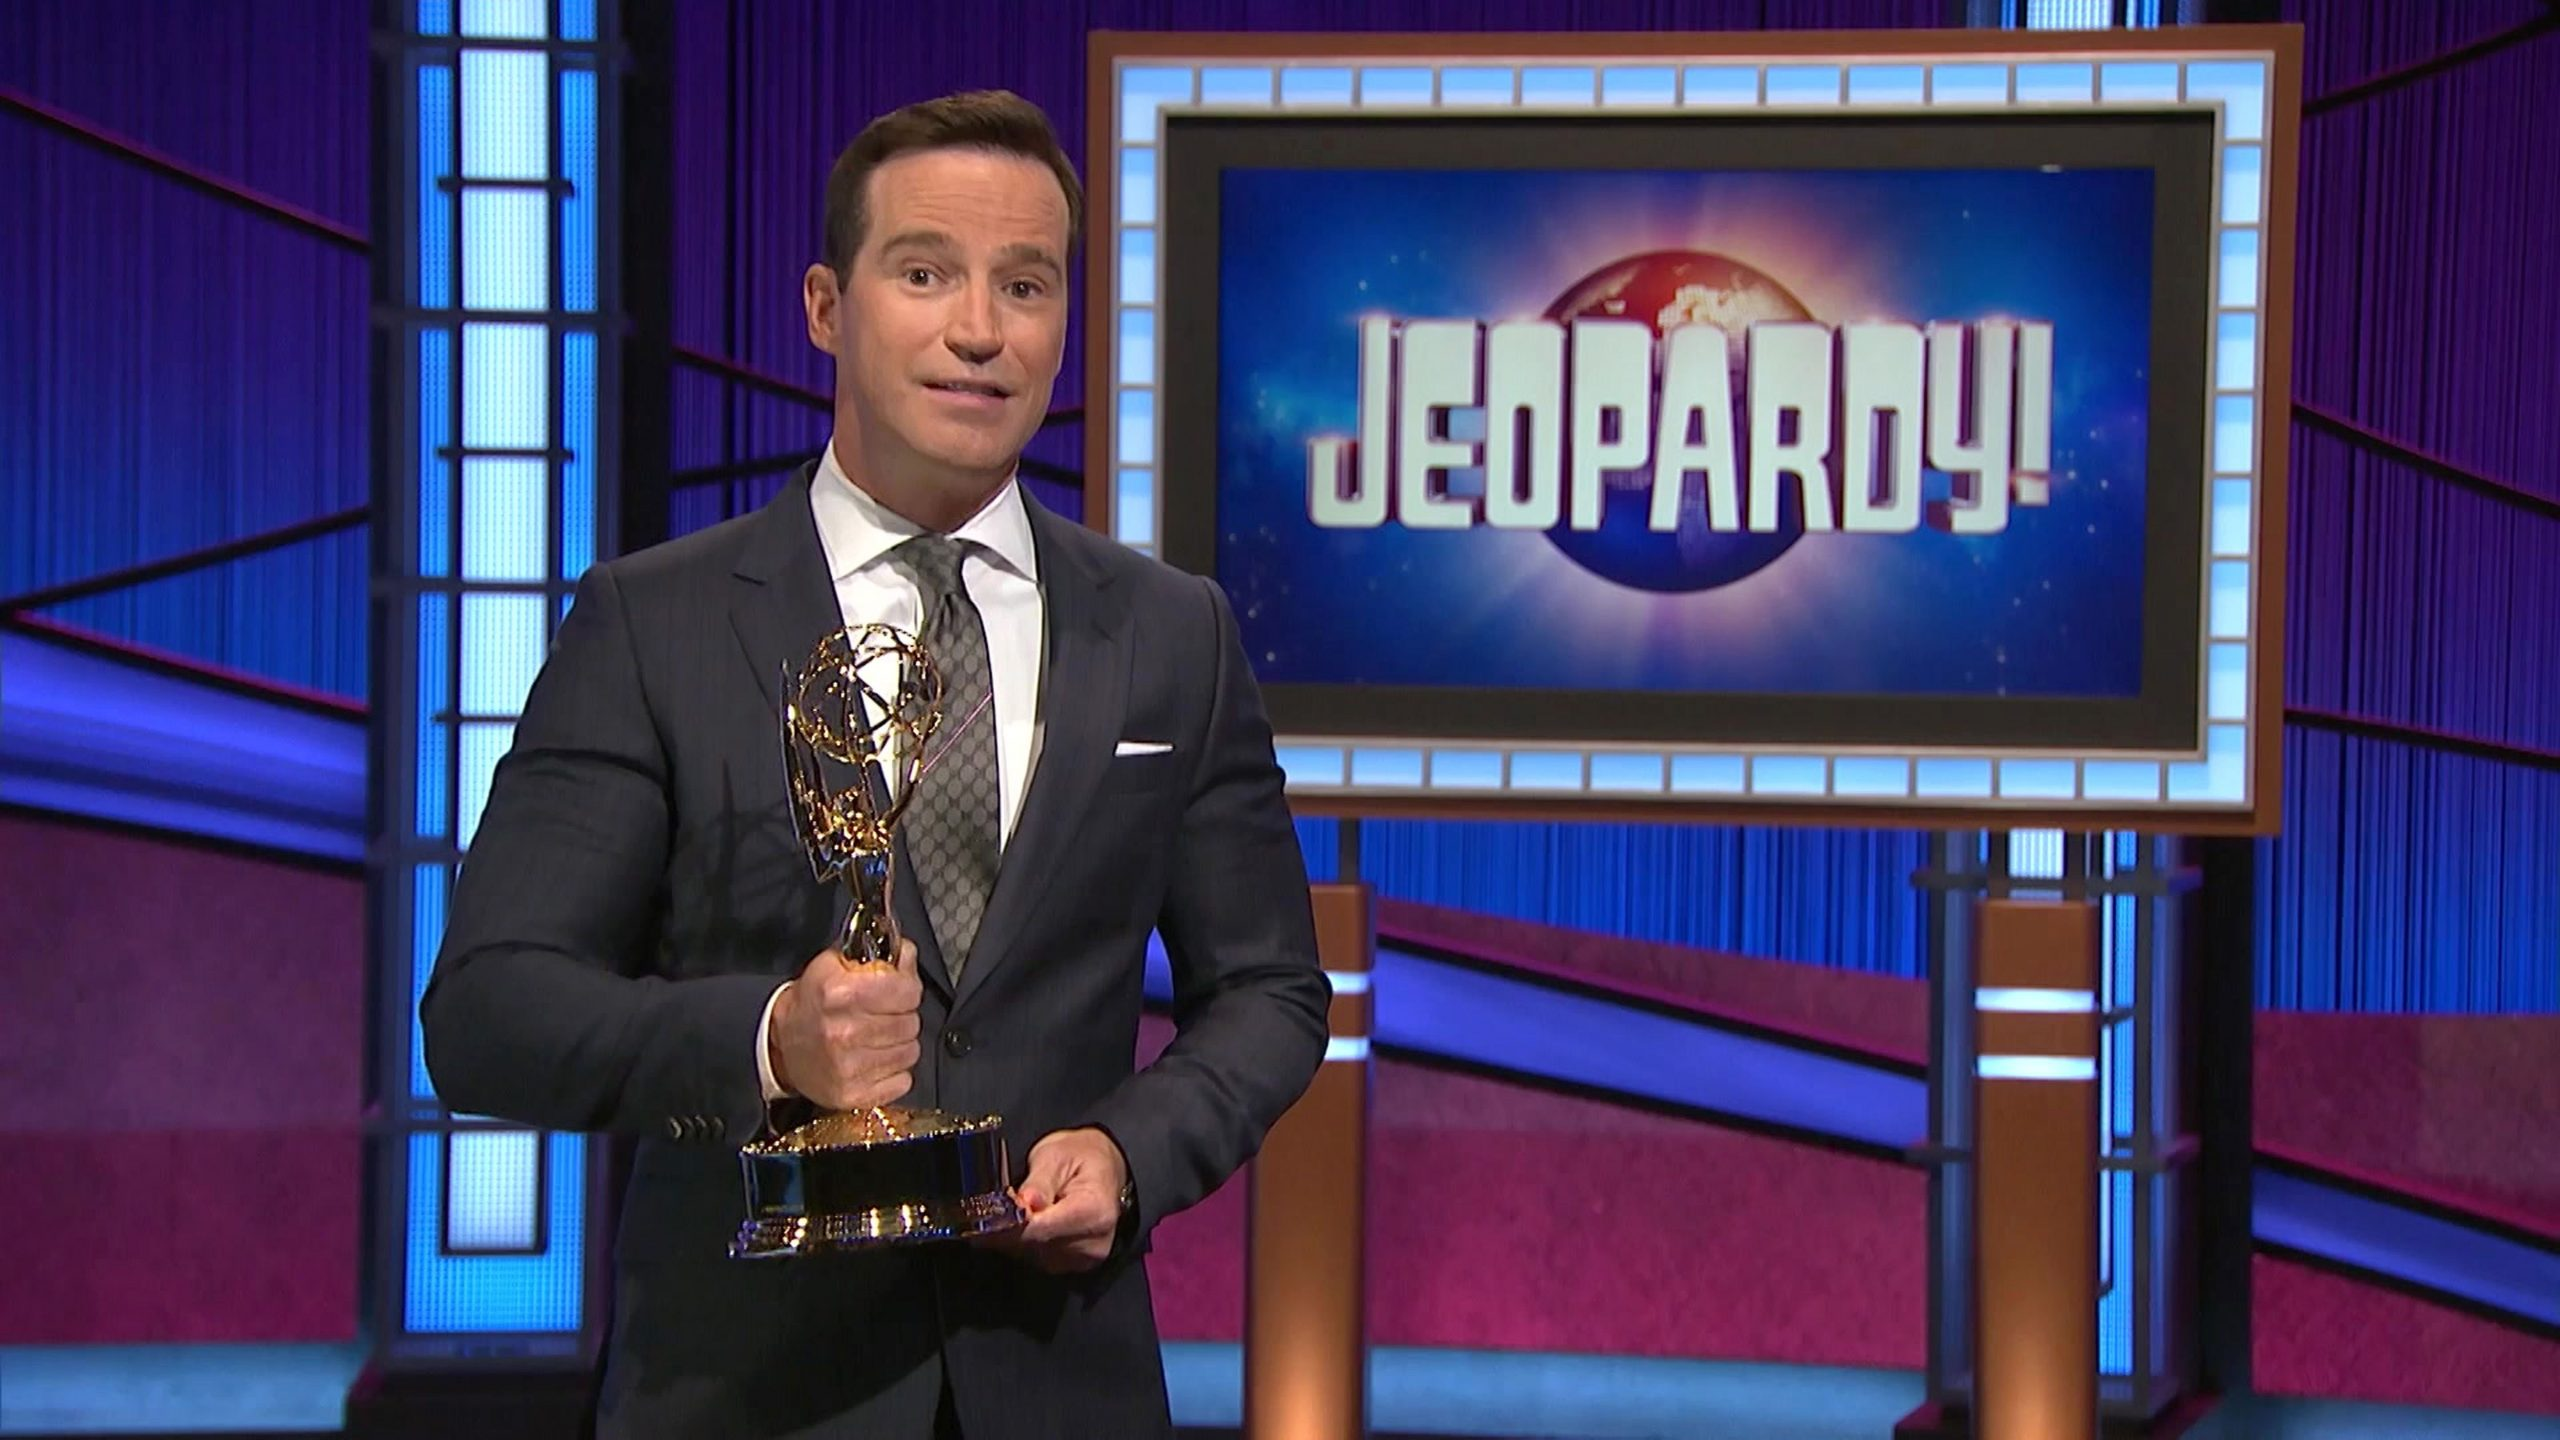 'Jeopardy!' executive producer Mike Richards accepts the show's Emmy award for Outstanding Game Show in 2021.